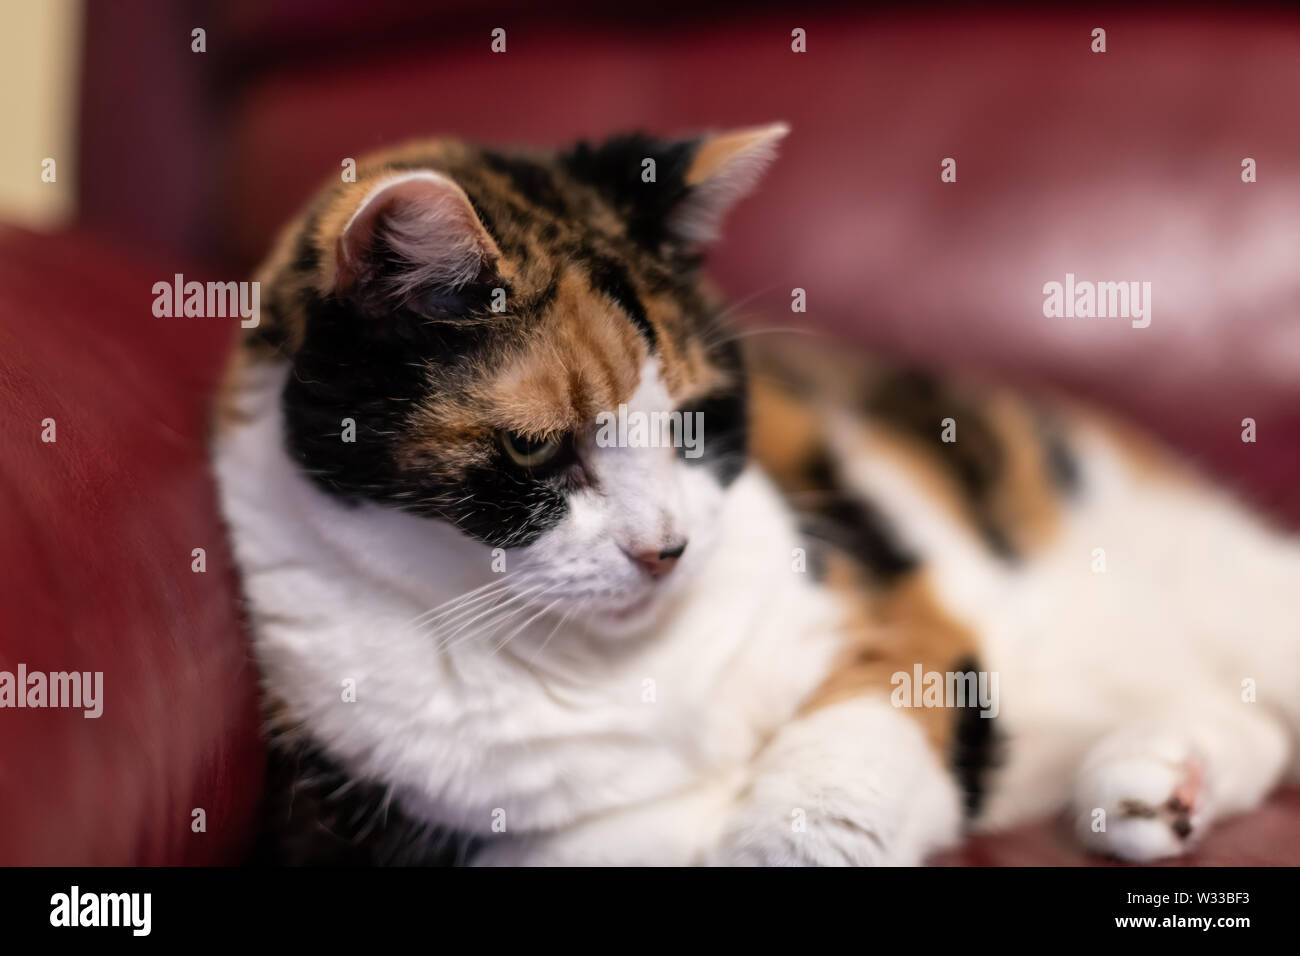 Closeup of senior old calico cat lying in living room on red leather sofa couch in home corner, looking tired or annoyed - Stock Image